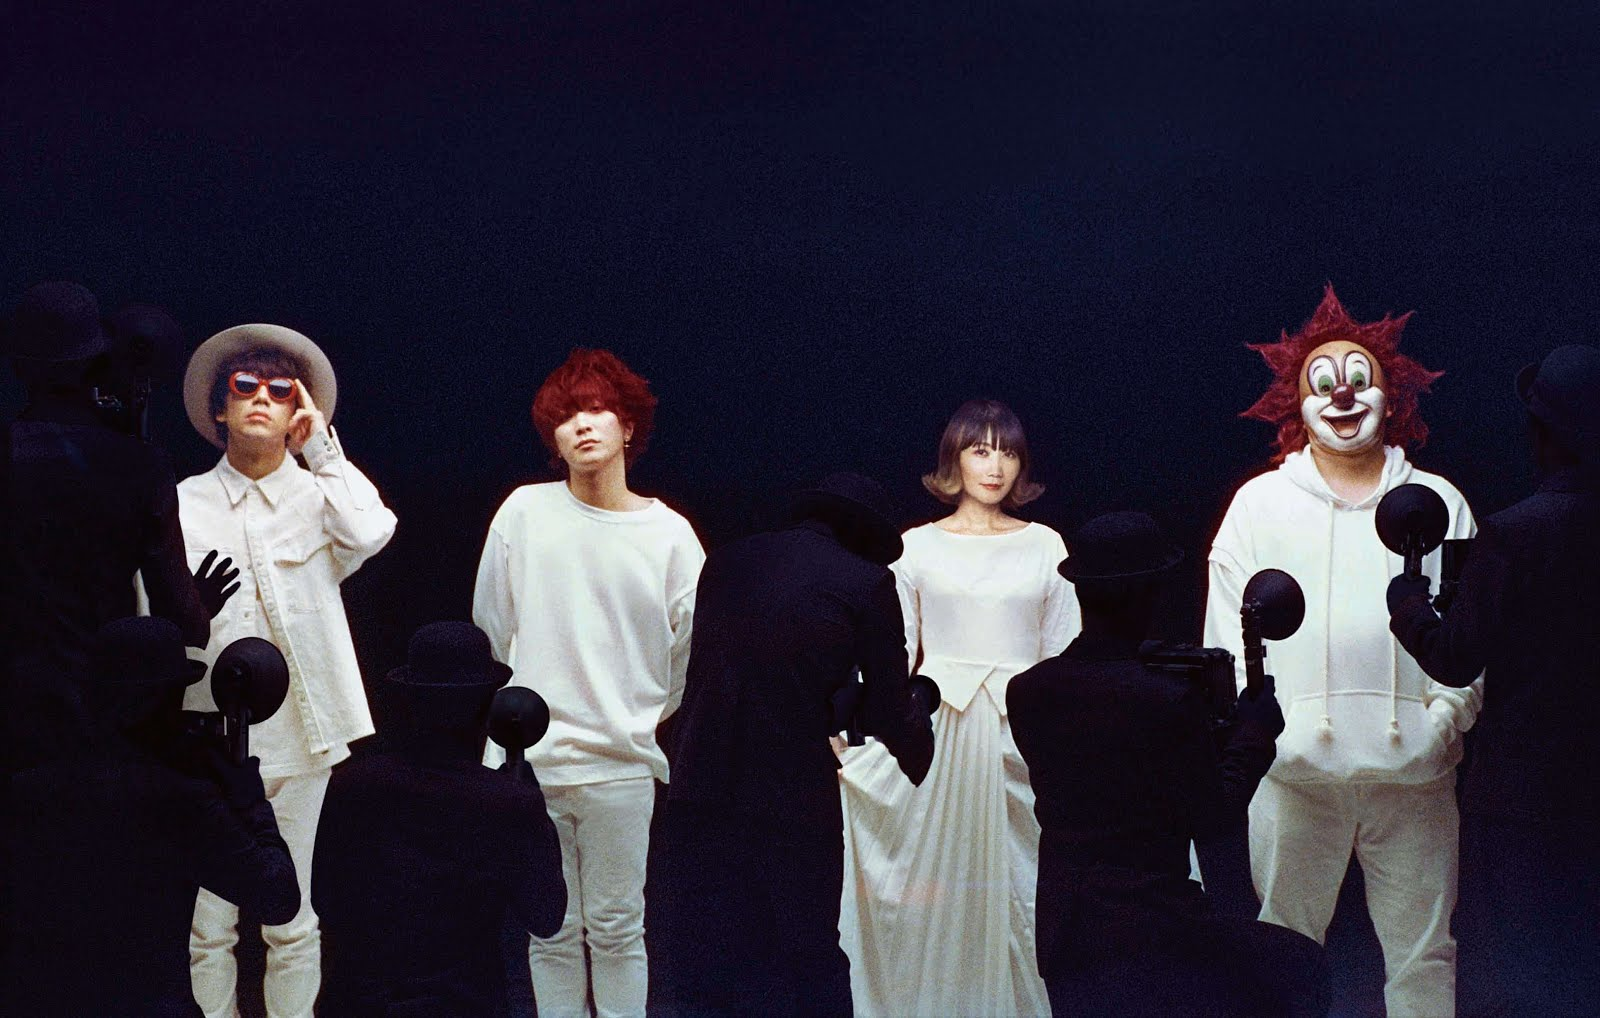 SEKAI NO OWARI (世界の終わり) - Eye Lip Album detail cd dvd tracklist watch official mv